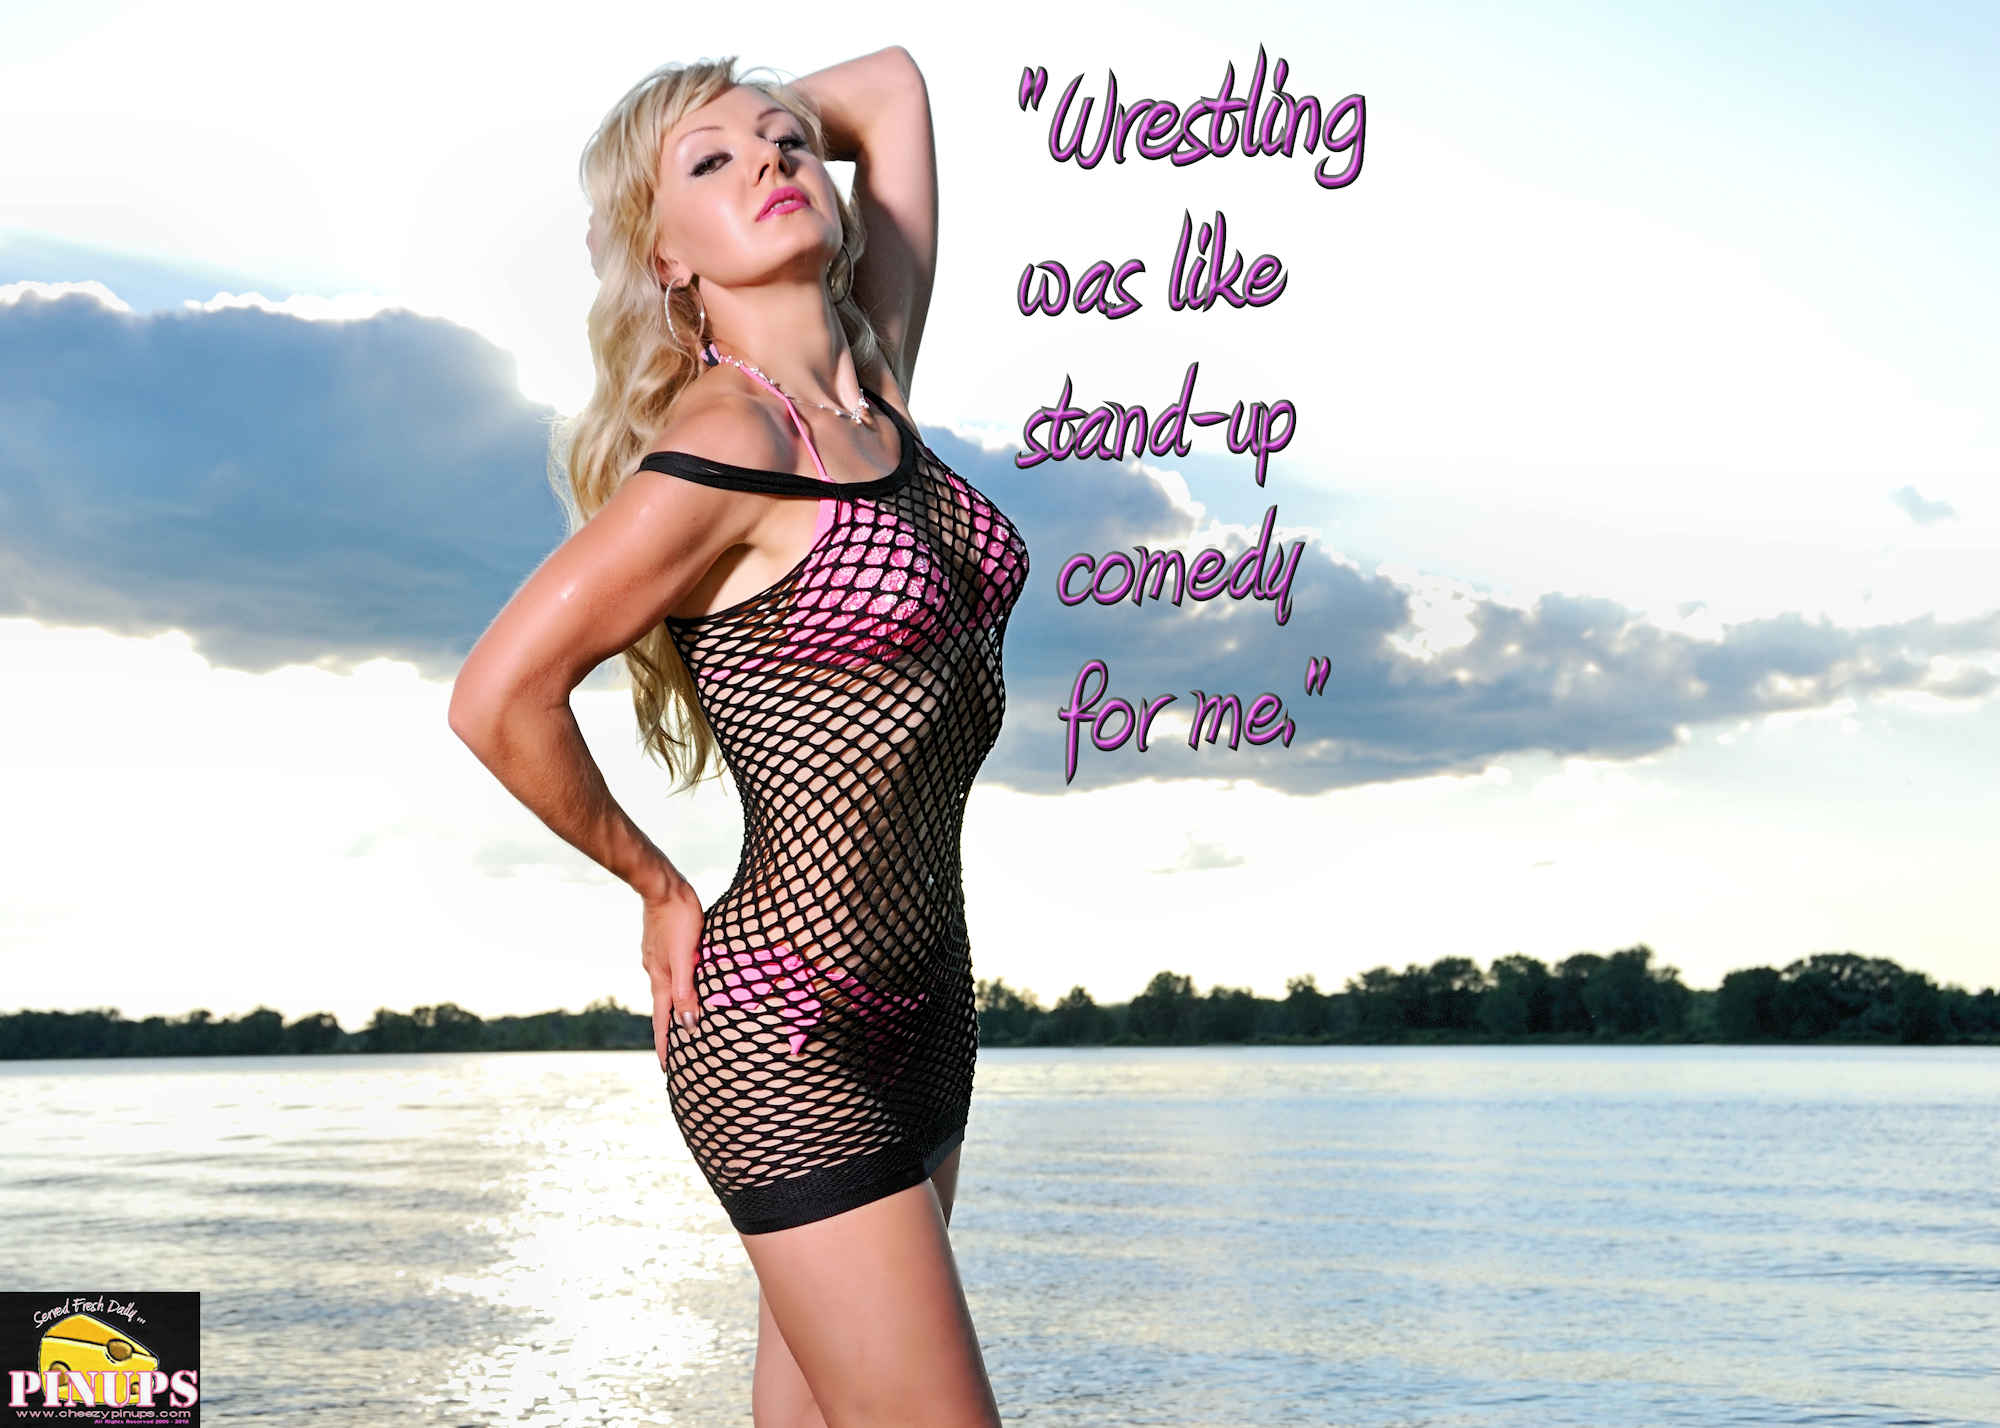 "Cheezy Pinup - May 2, 2018 ""Wrestling was like stand-up comedy for me."" -Dwayne Johnson Model: Alya"